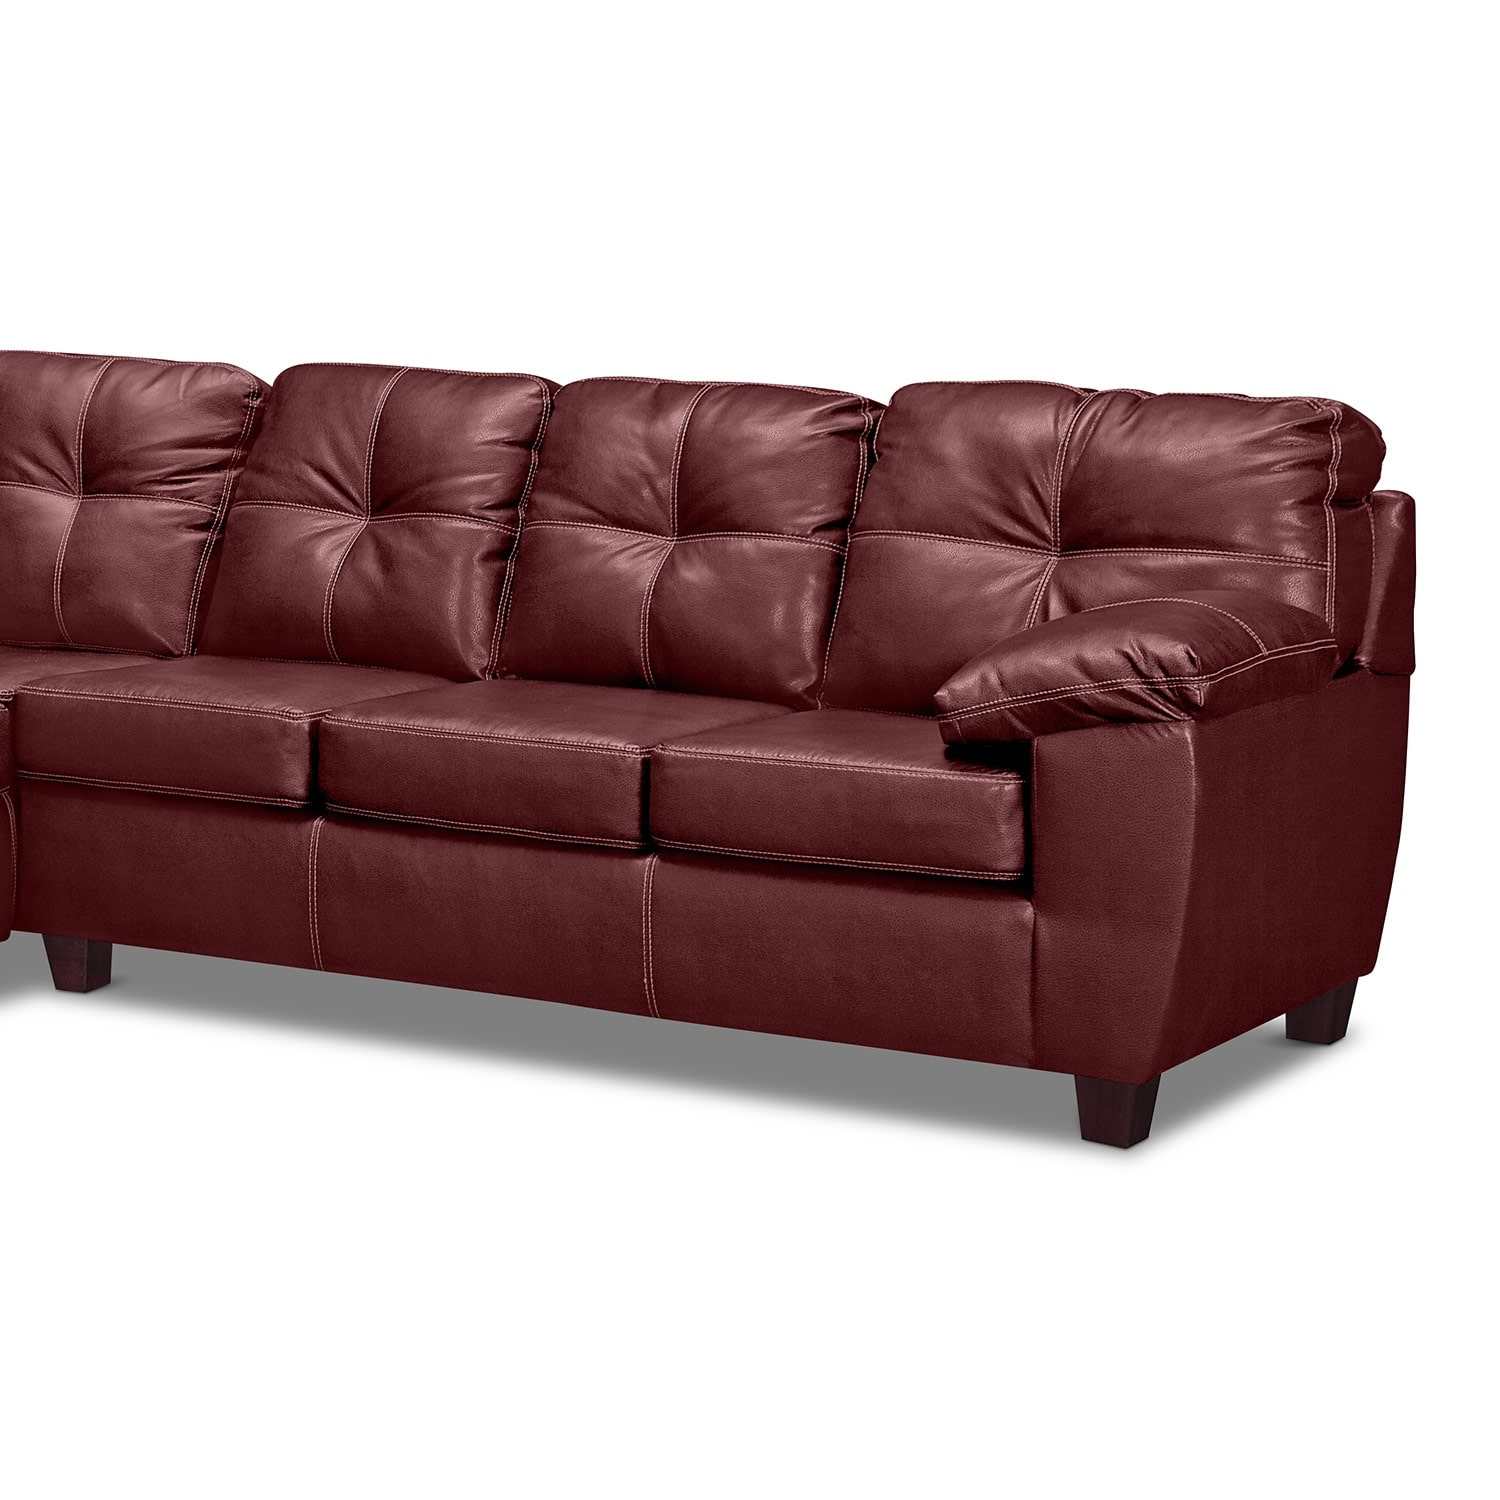 Rialto Ii Leather 2 Pc Sleeper Sectional With Chaise